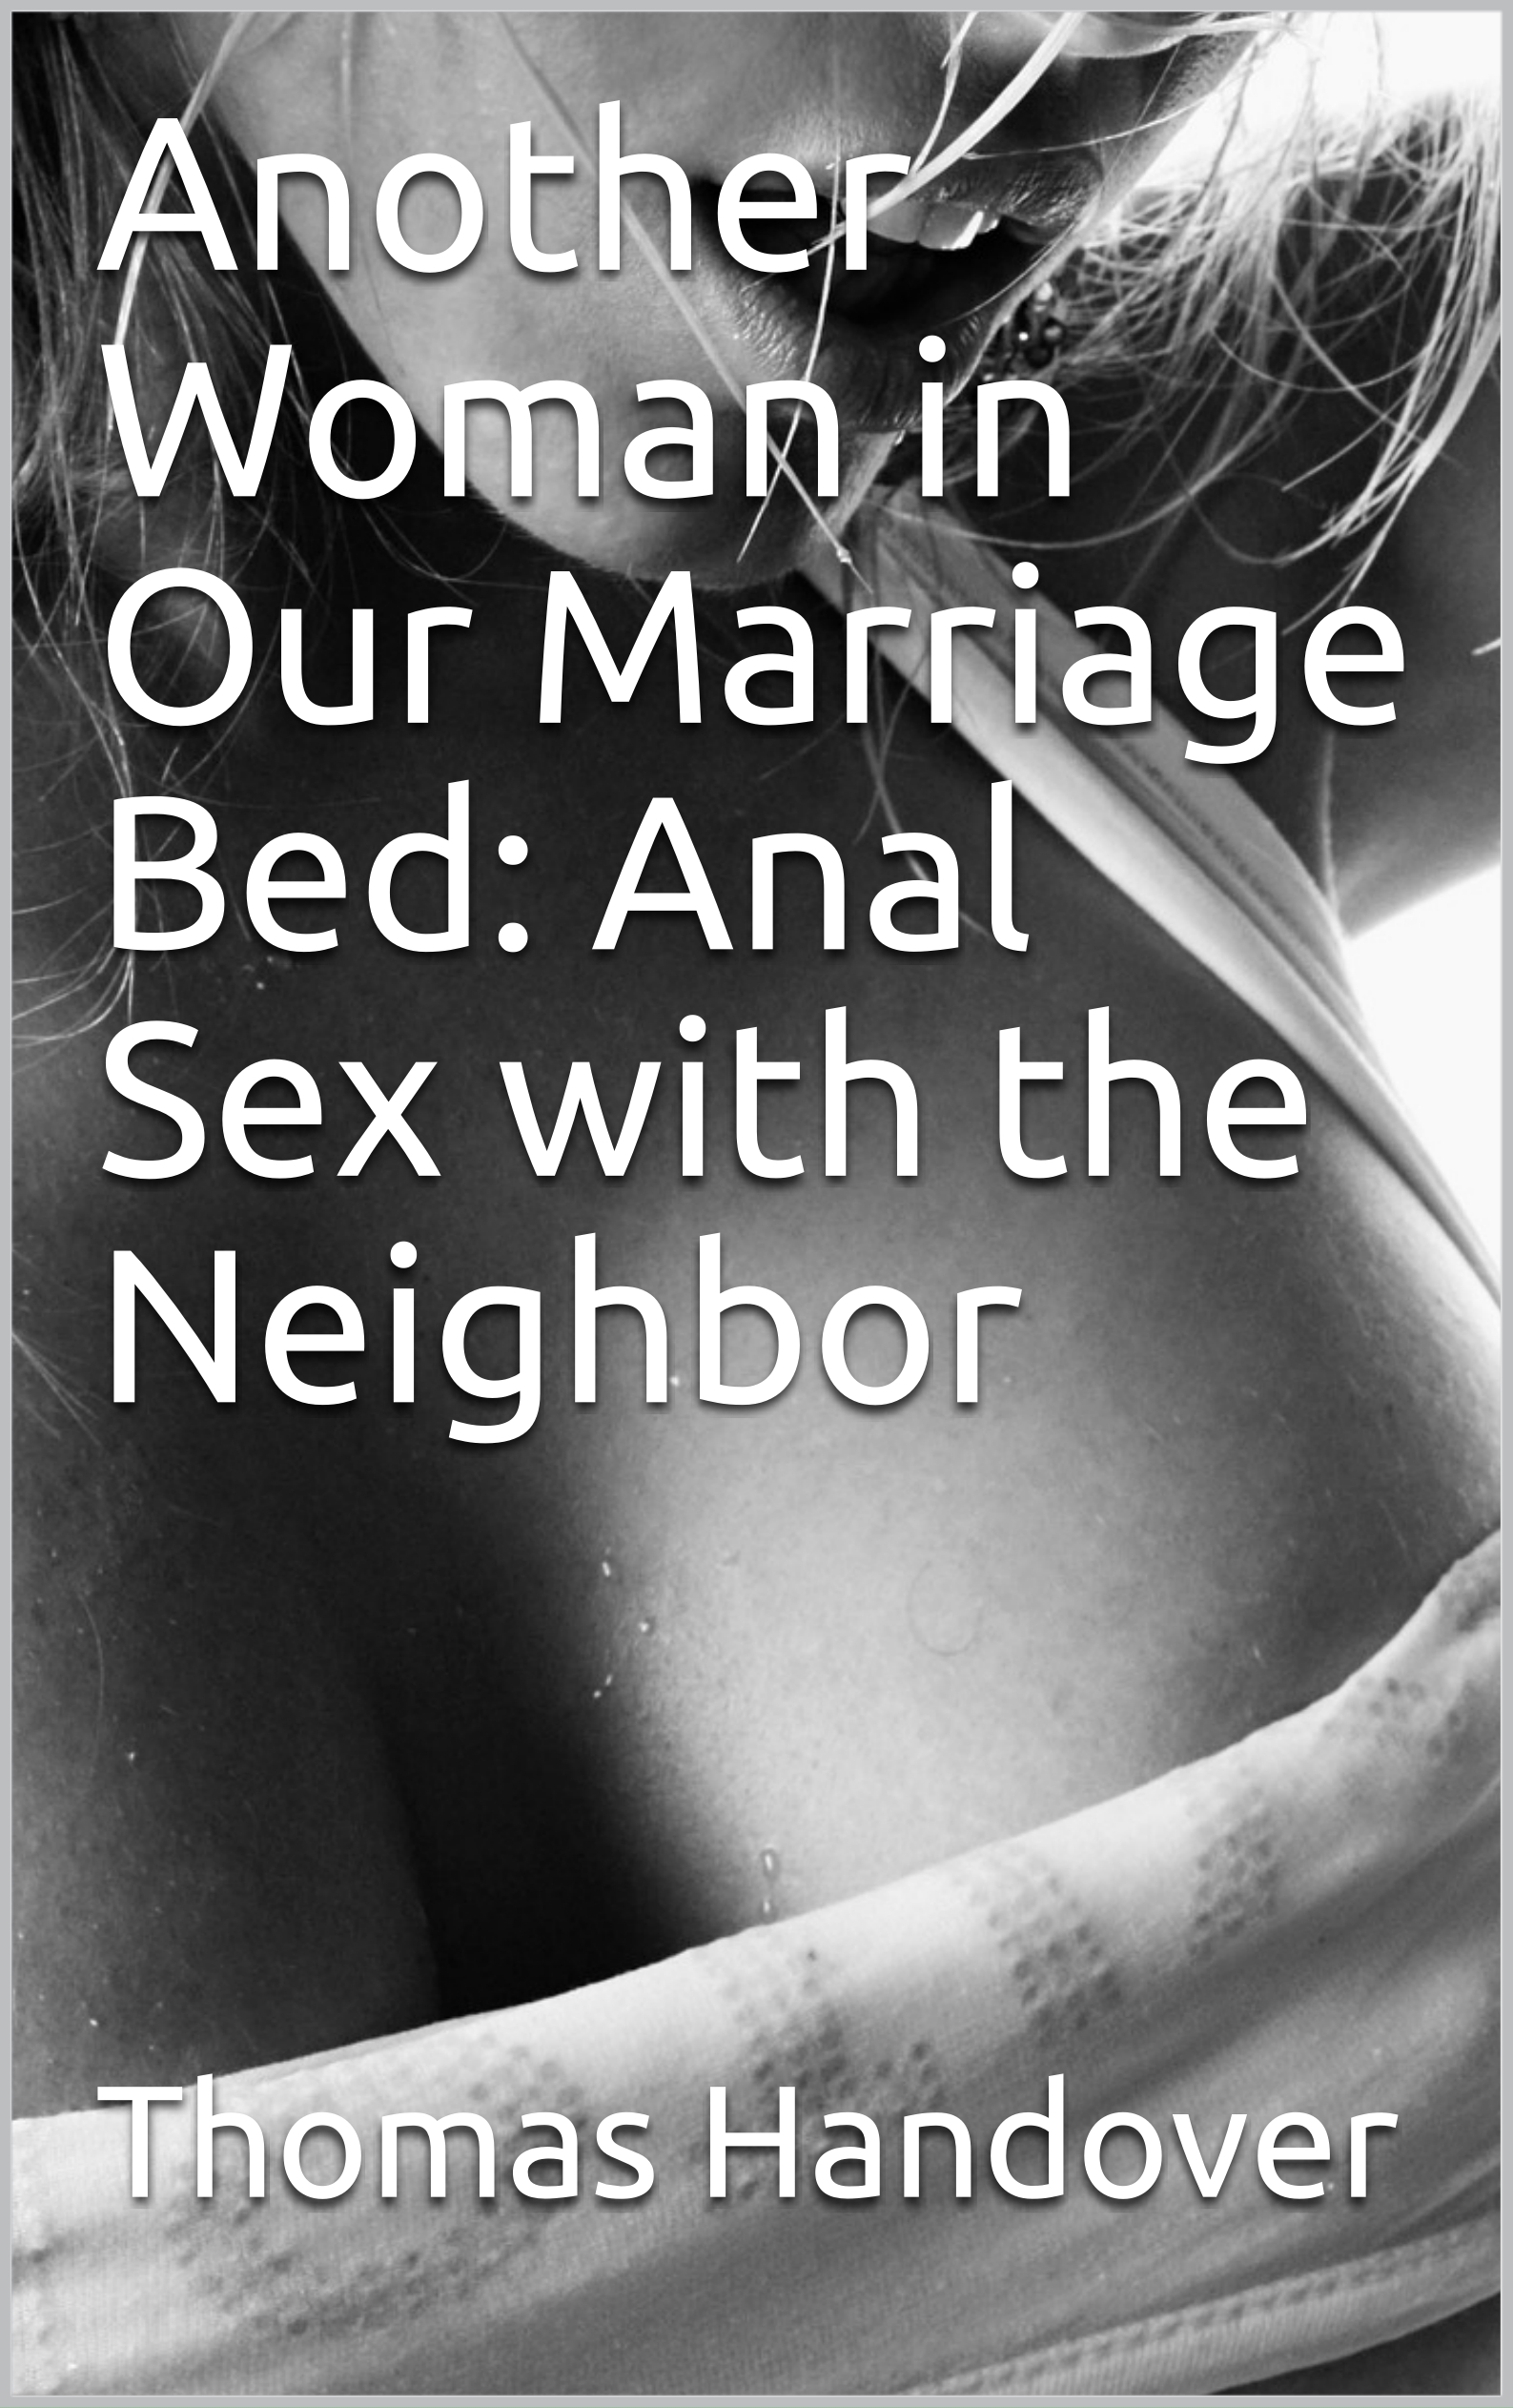 My wife is always too tired for sex